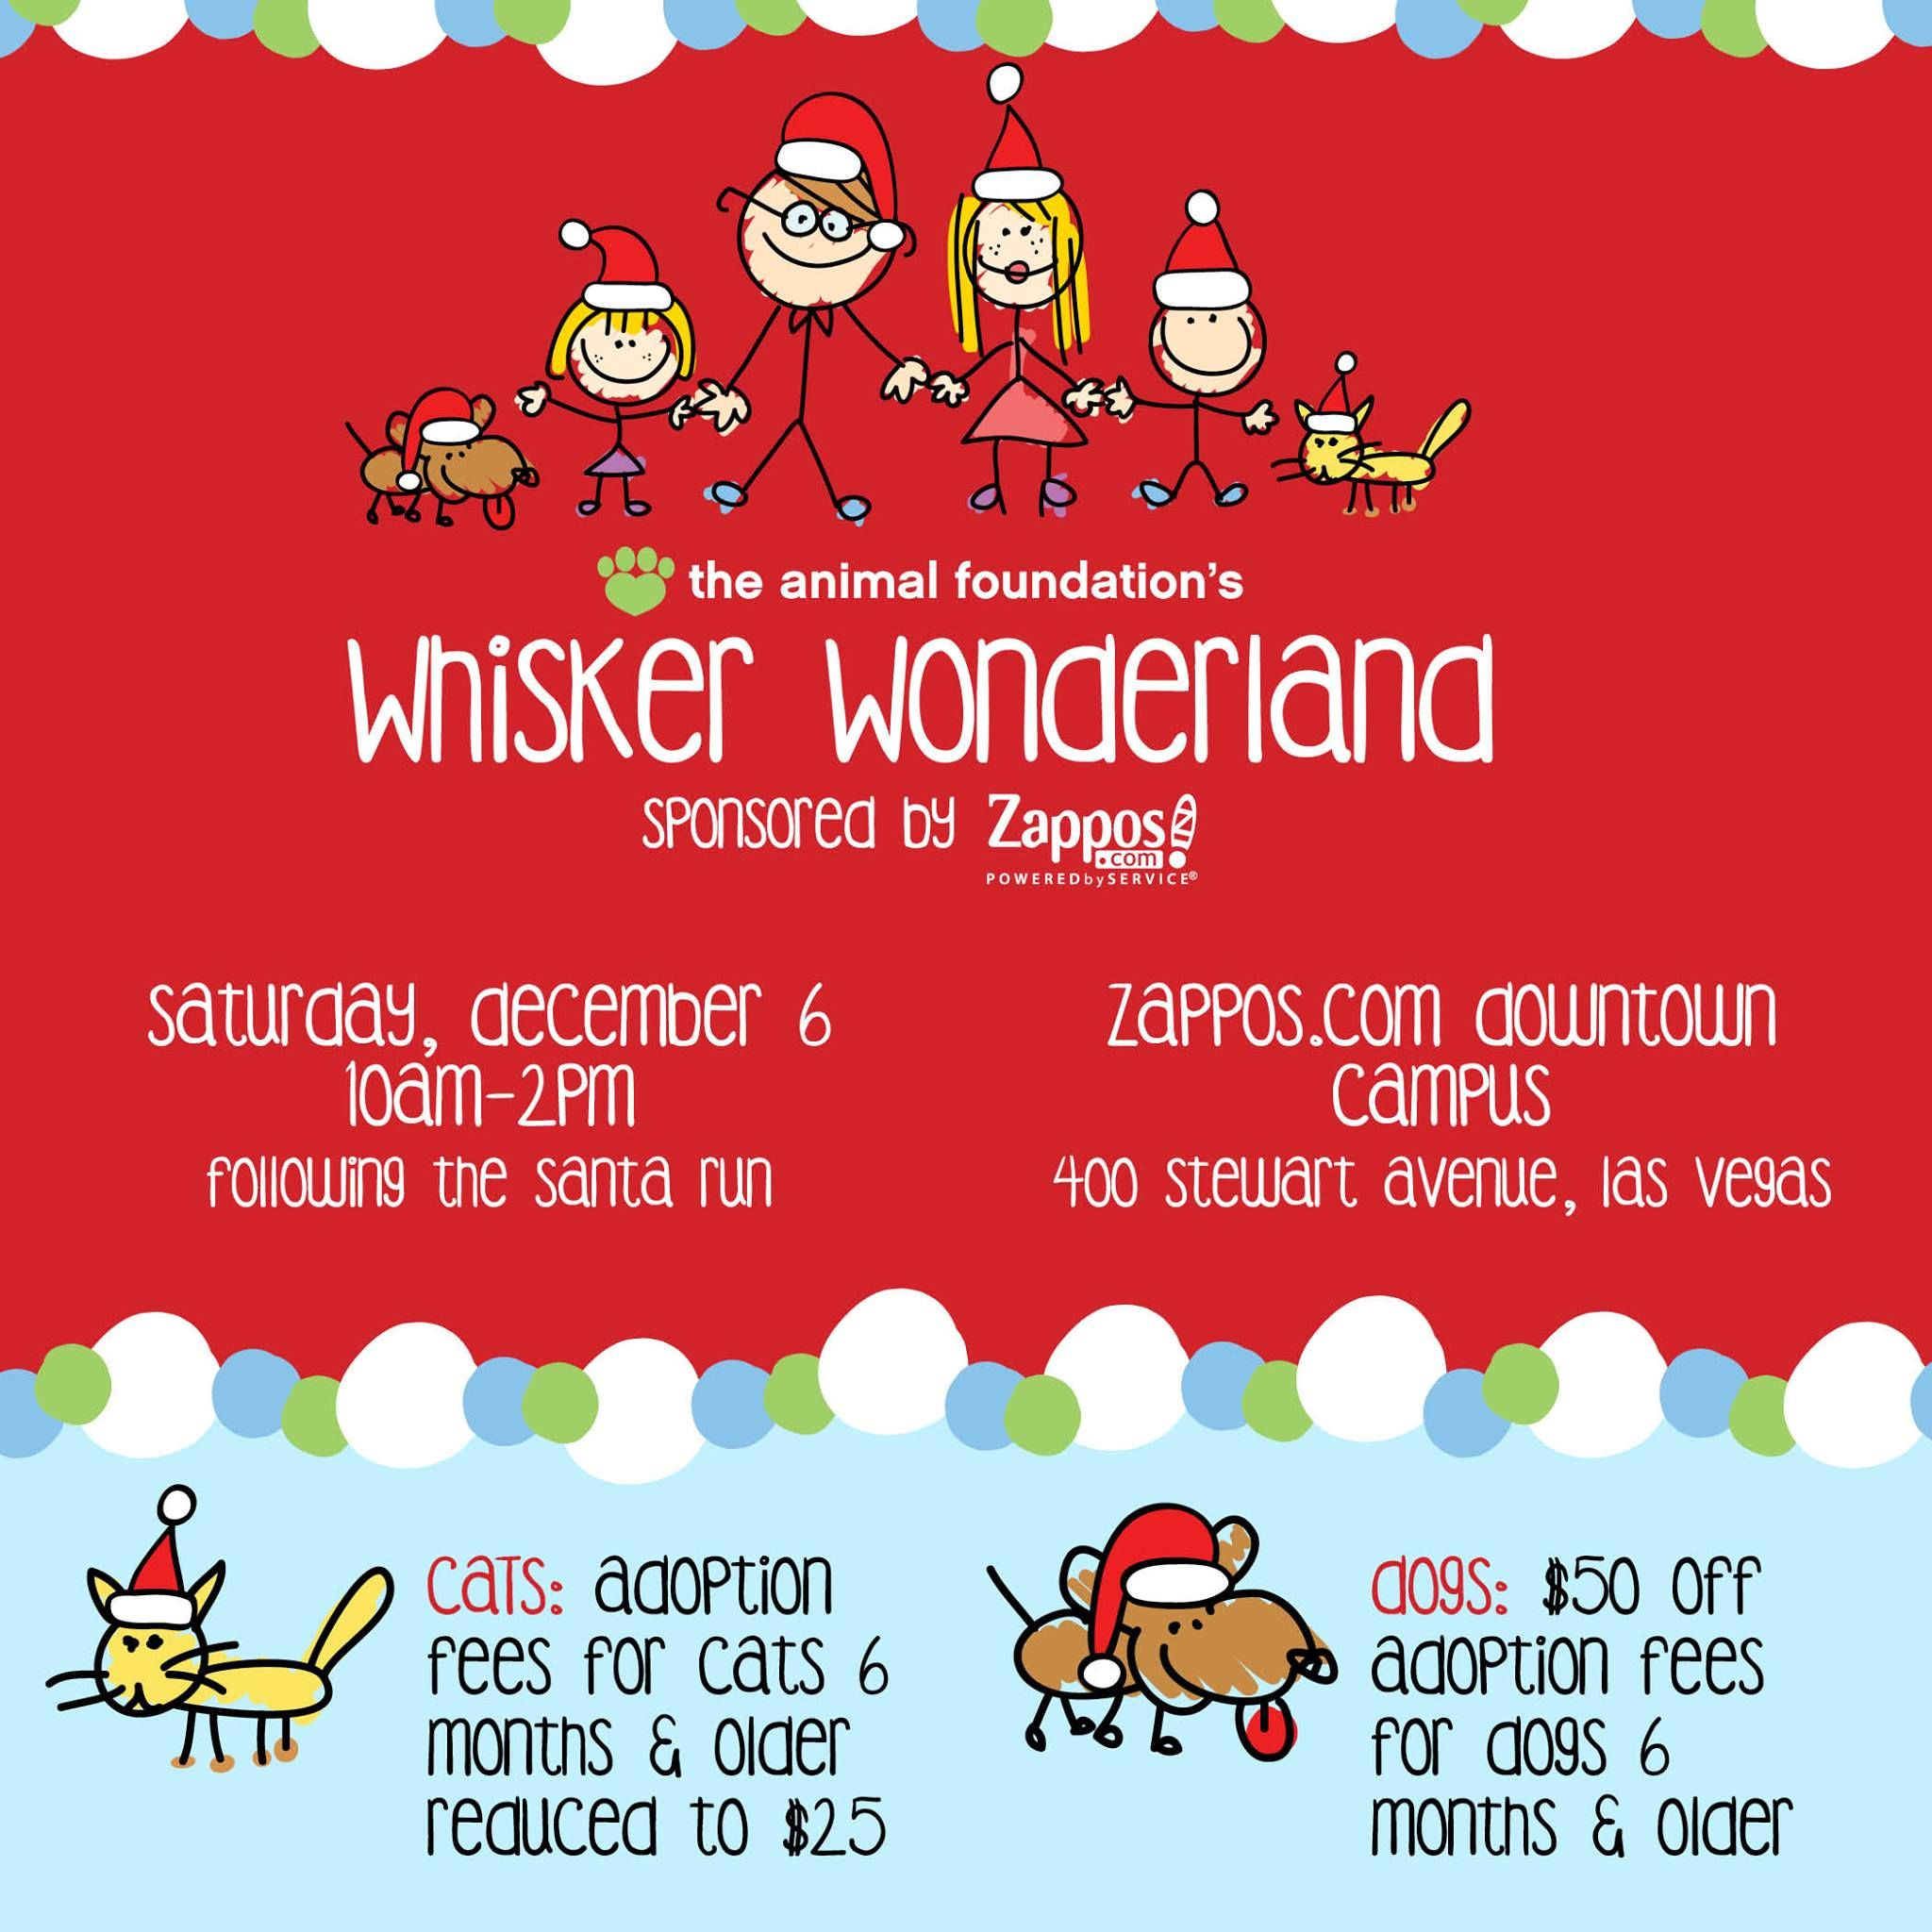 Join us tomorrow from 10am-2pm for Whisker Wonderland ...